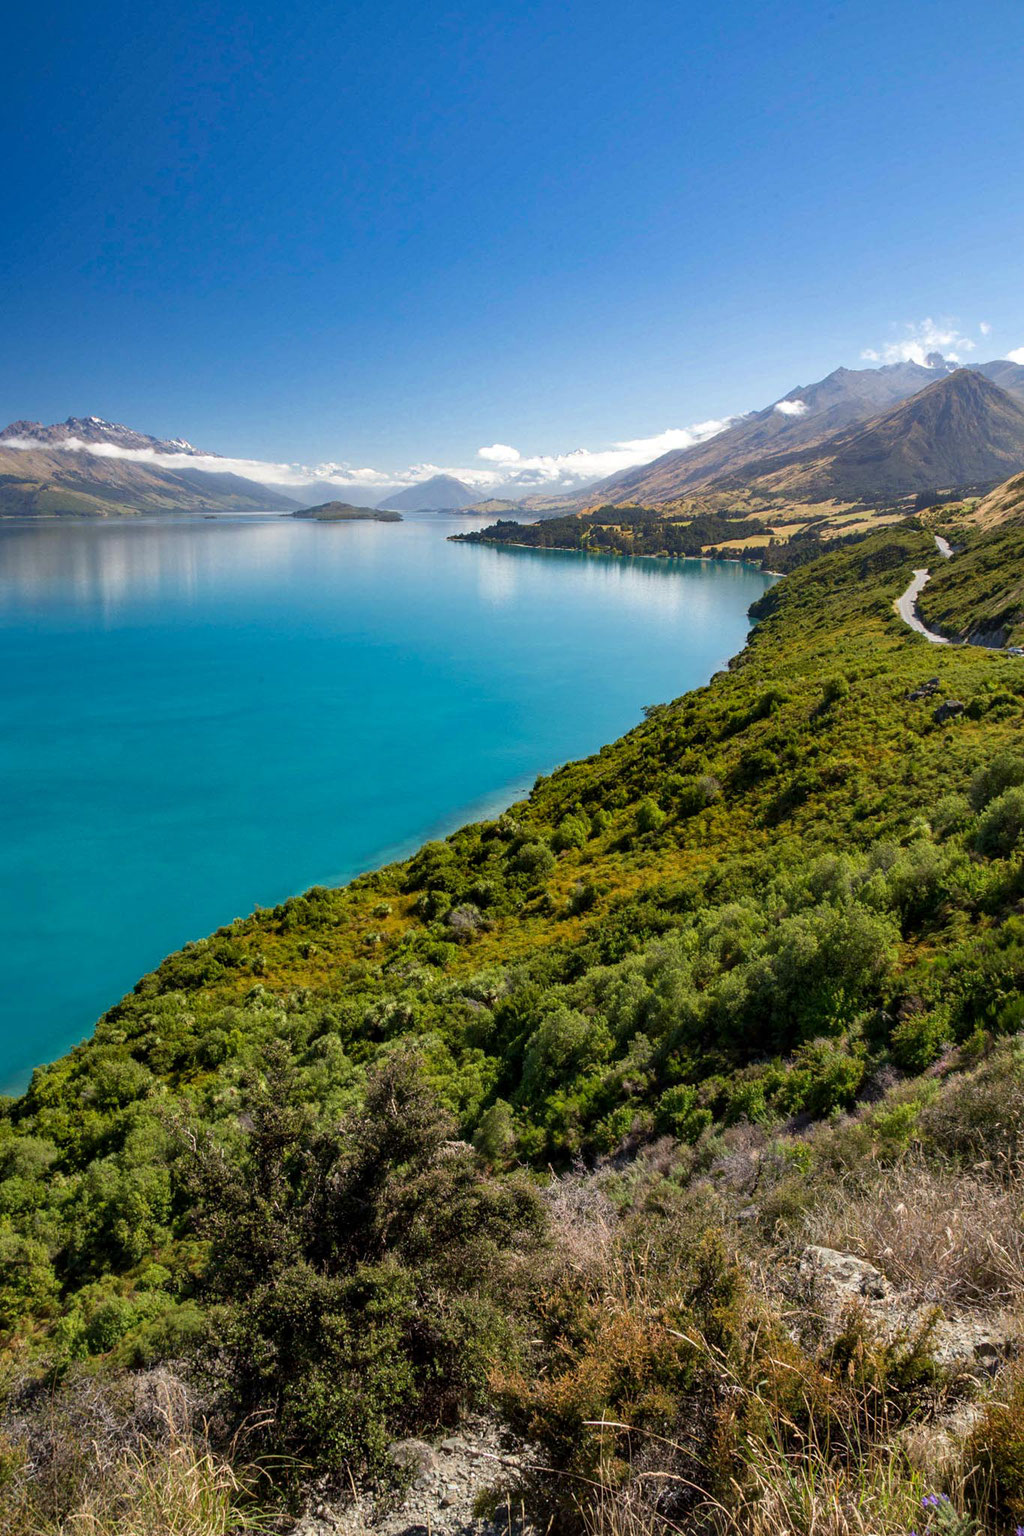 Bennet's Bluff Point on the way to Glenorchy